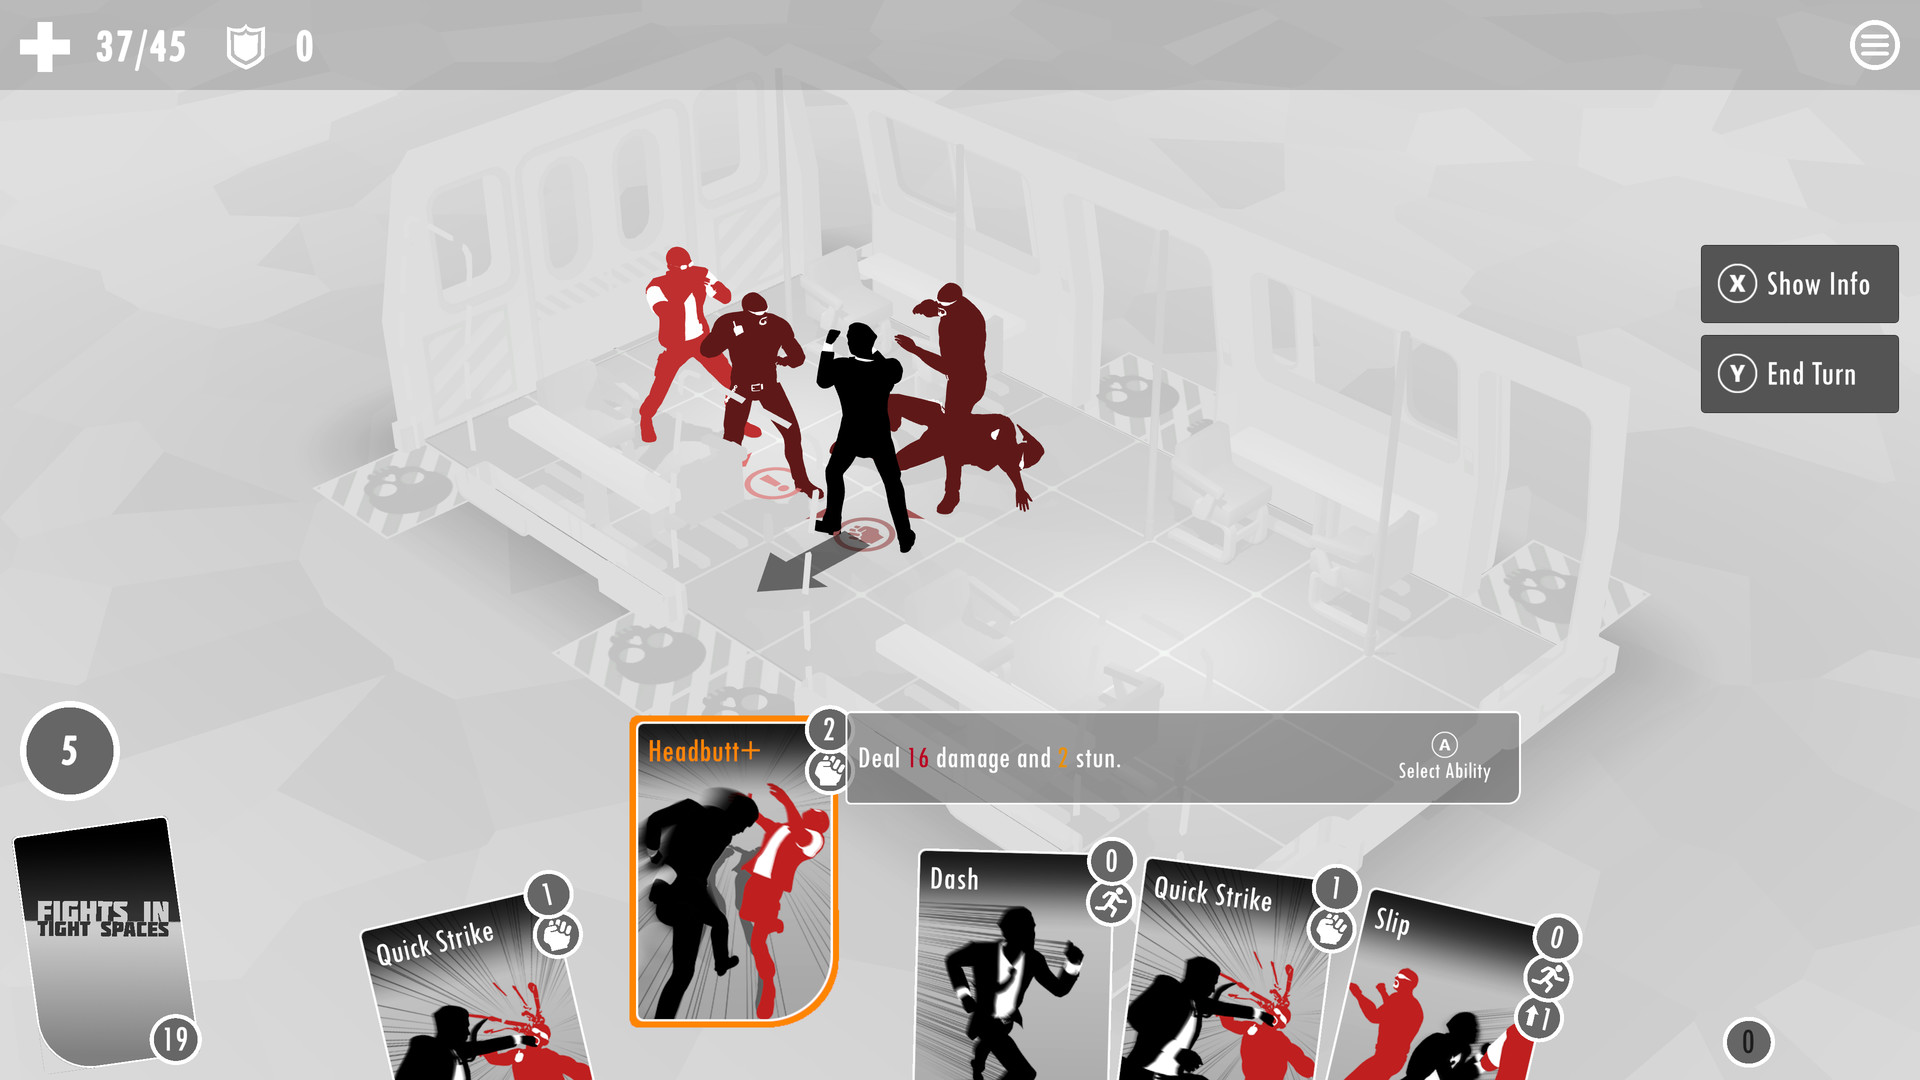 Fights in Tight Spaces screenshot 2